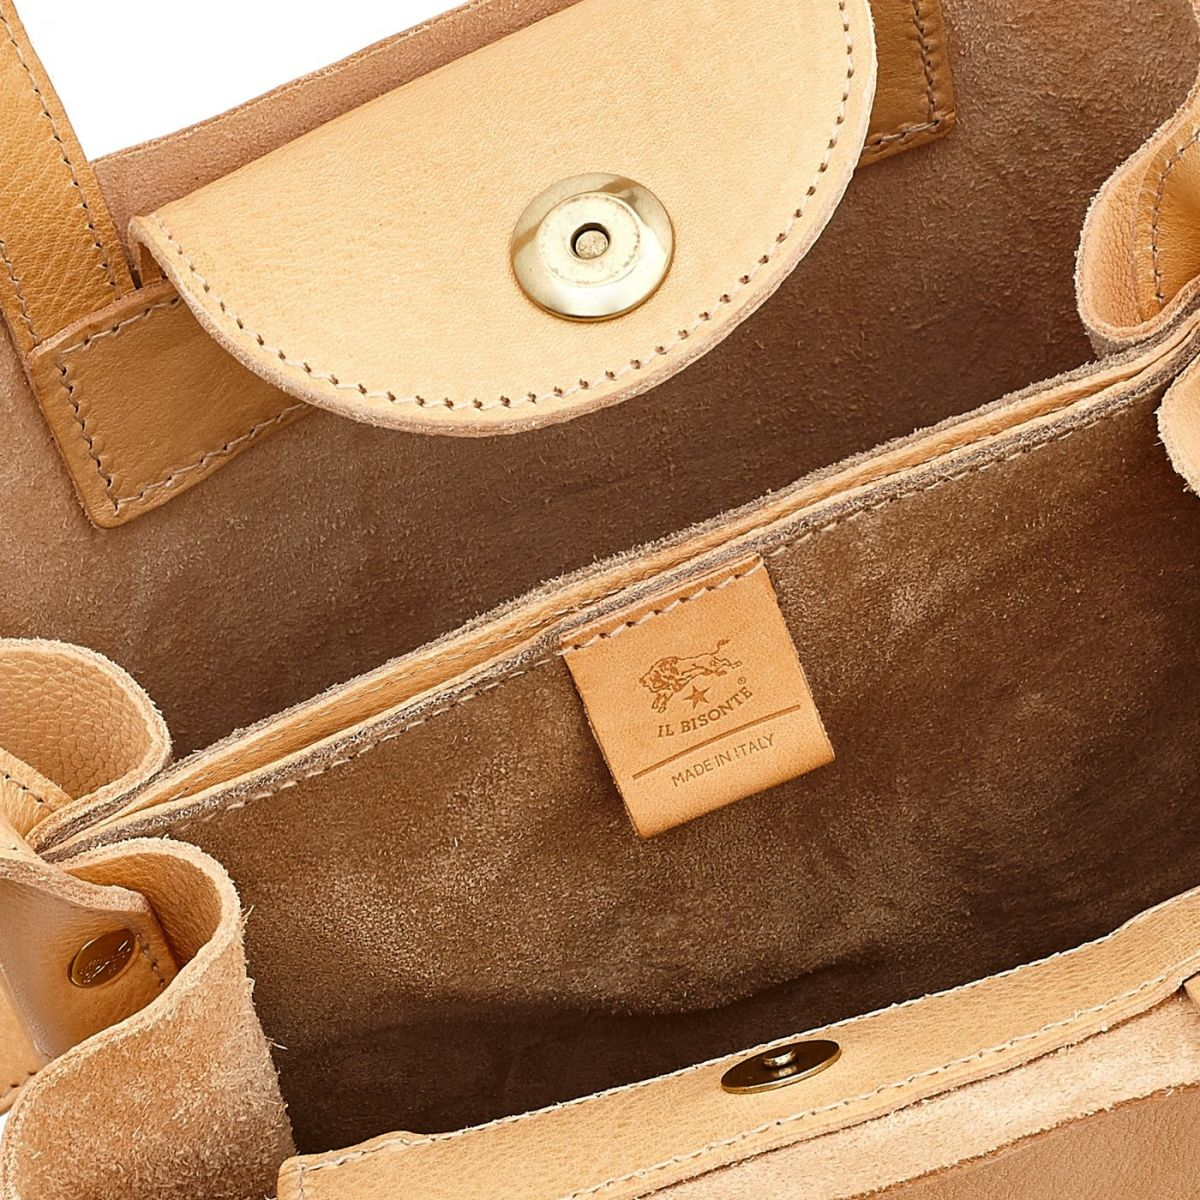 Women's Handbag  in Cowhide Leather BTH106 color Natural | Details